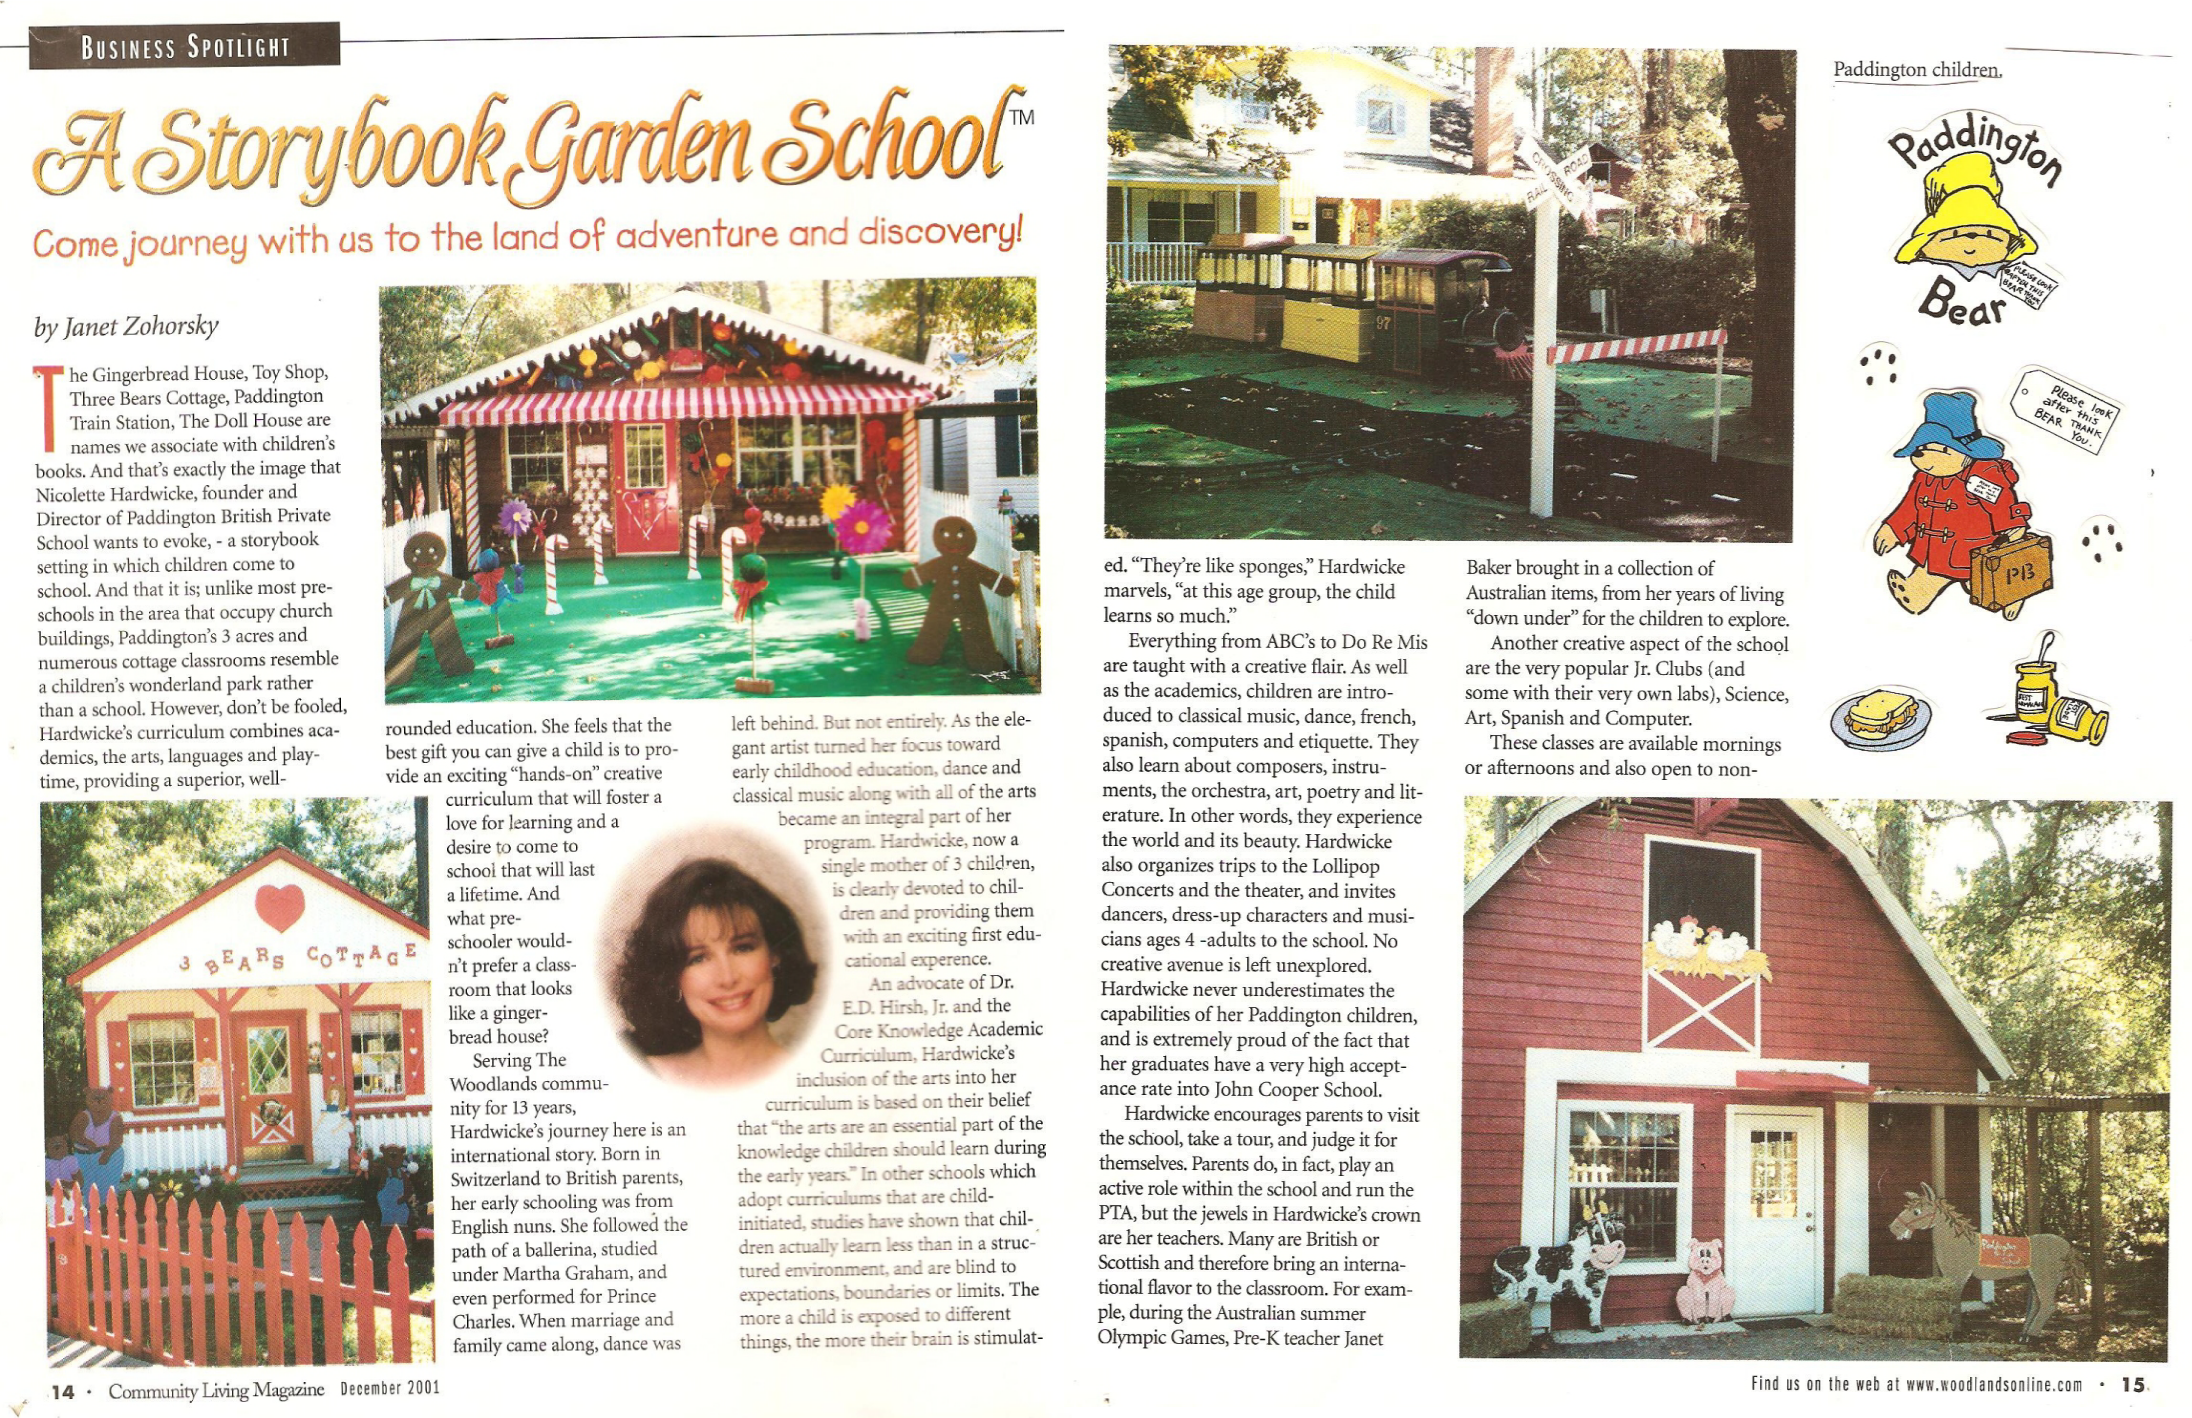 Business Spotlight: A Storybook Garden School.